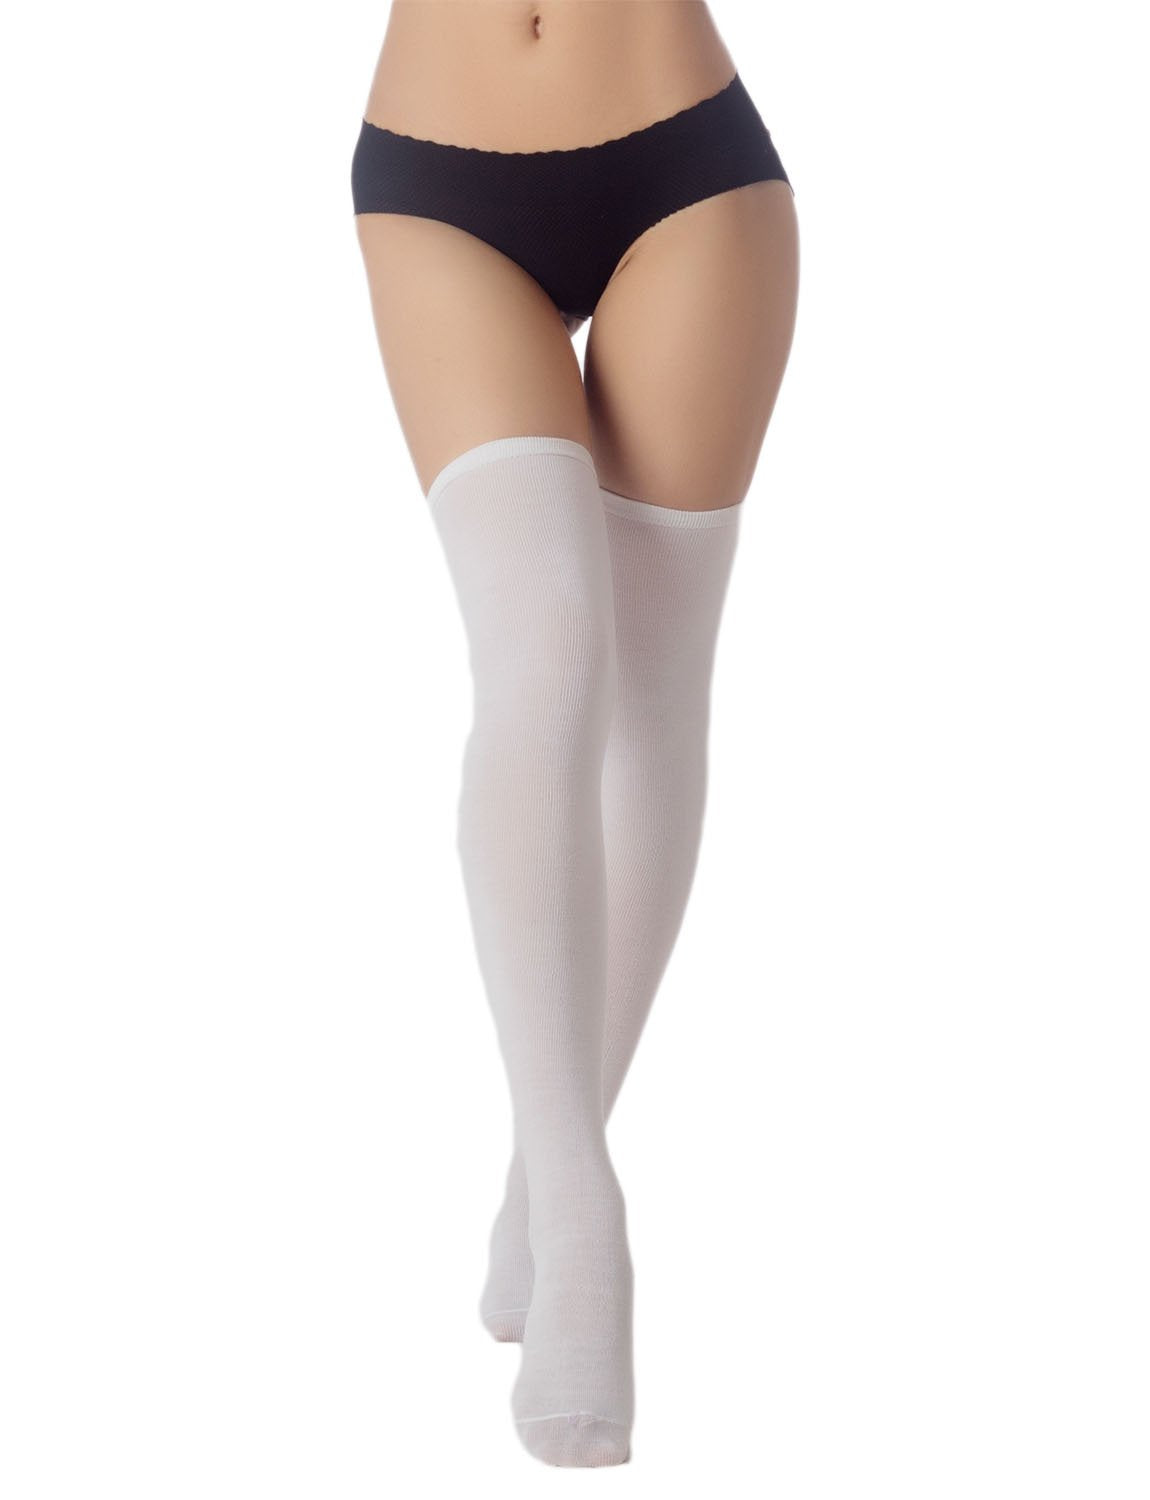 Women's Navy Stripes Sports Football Style Cute Hold-Up Thigh High Socks, Size: One Size, White